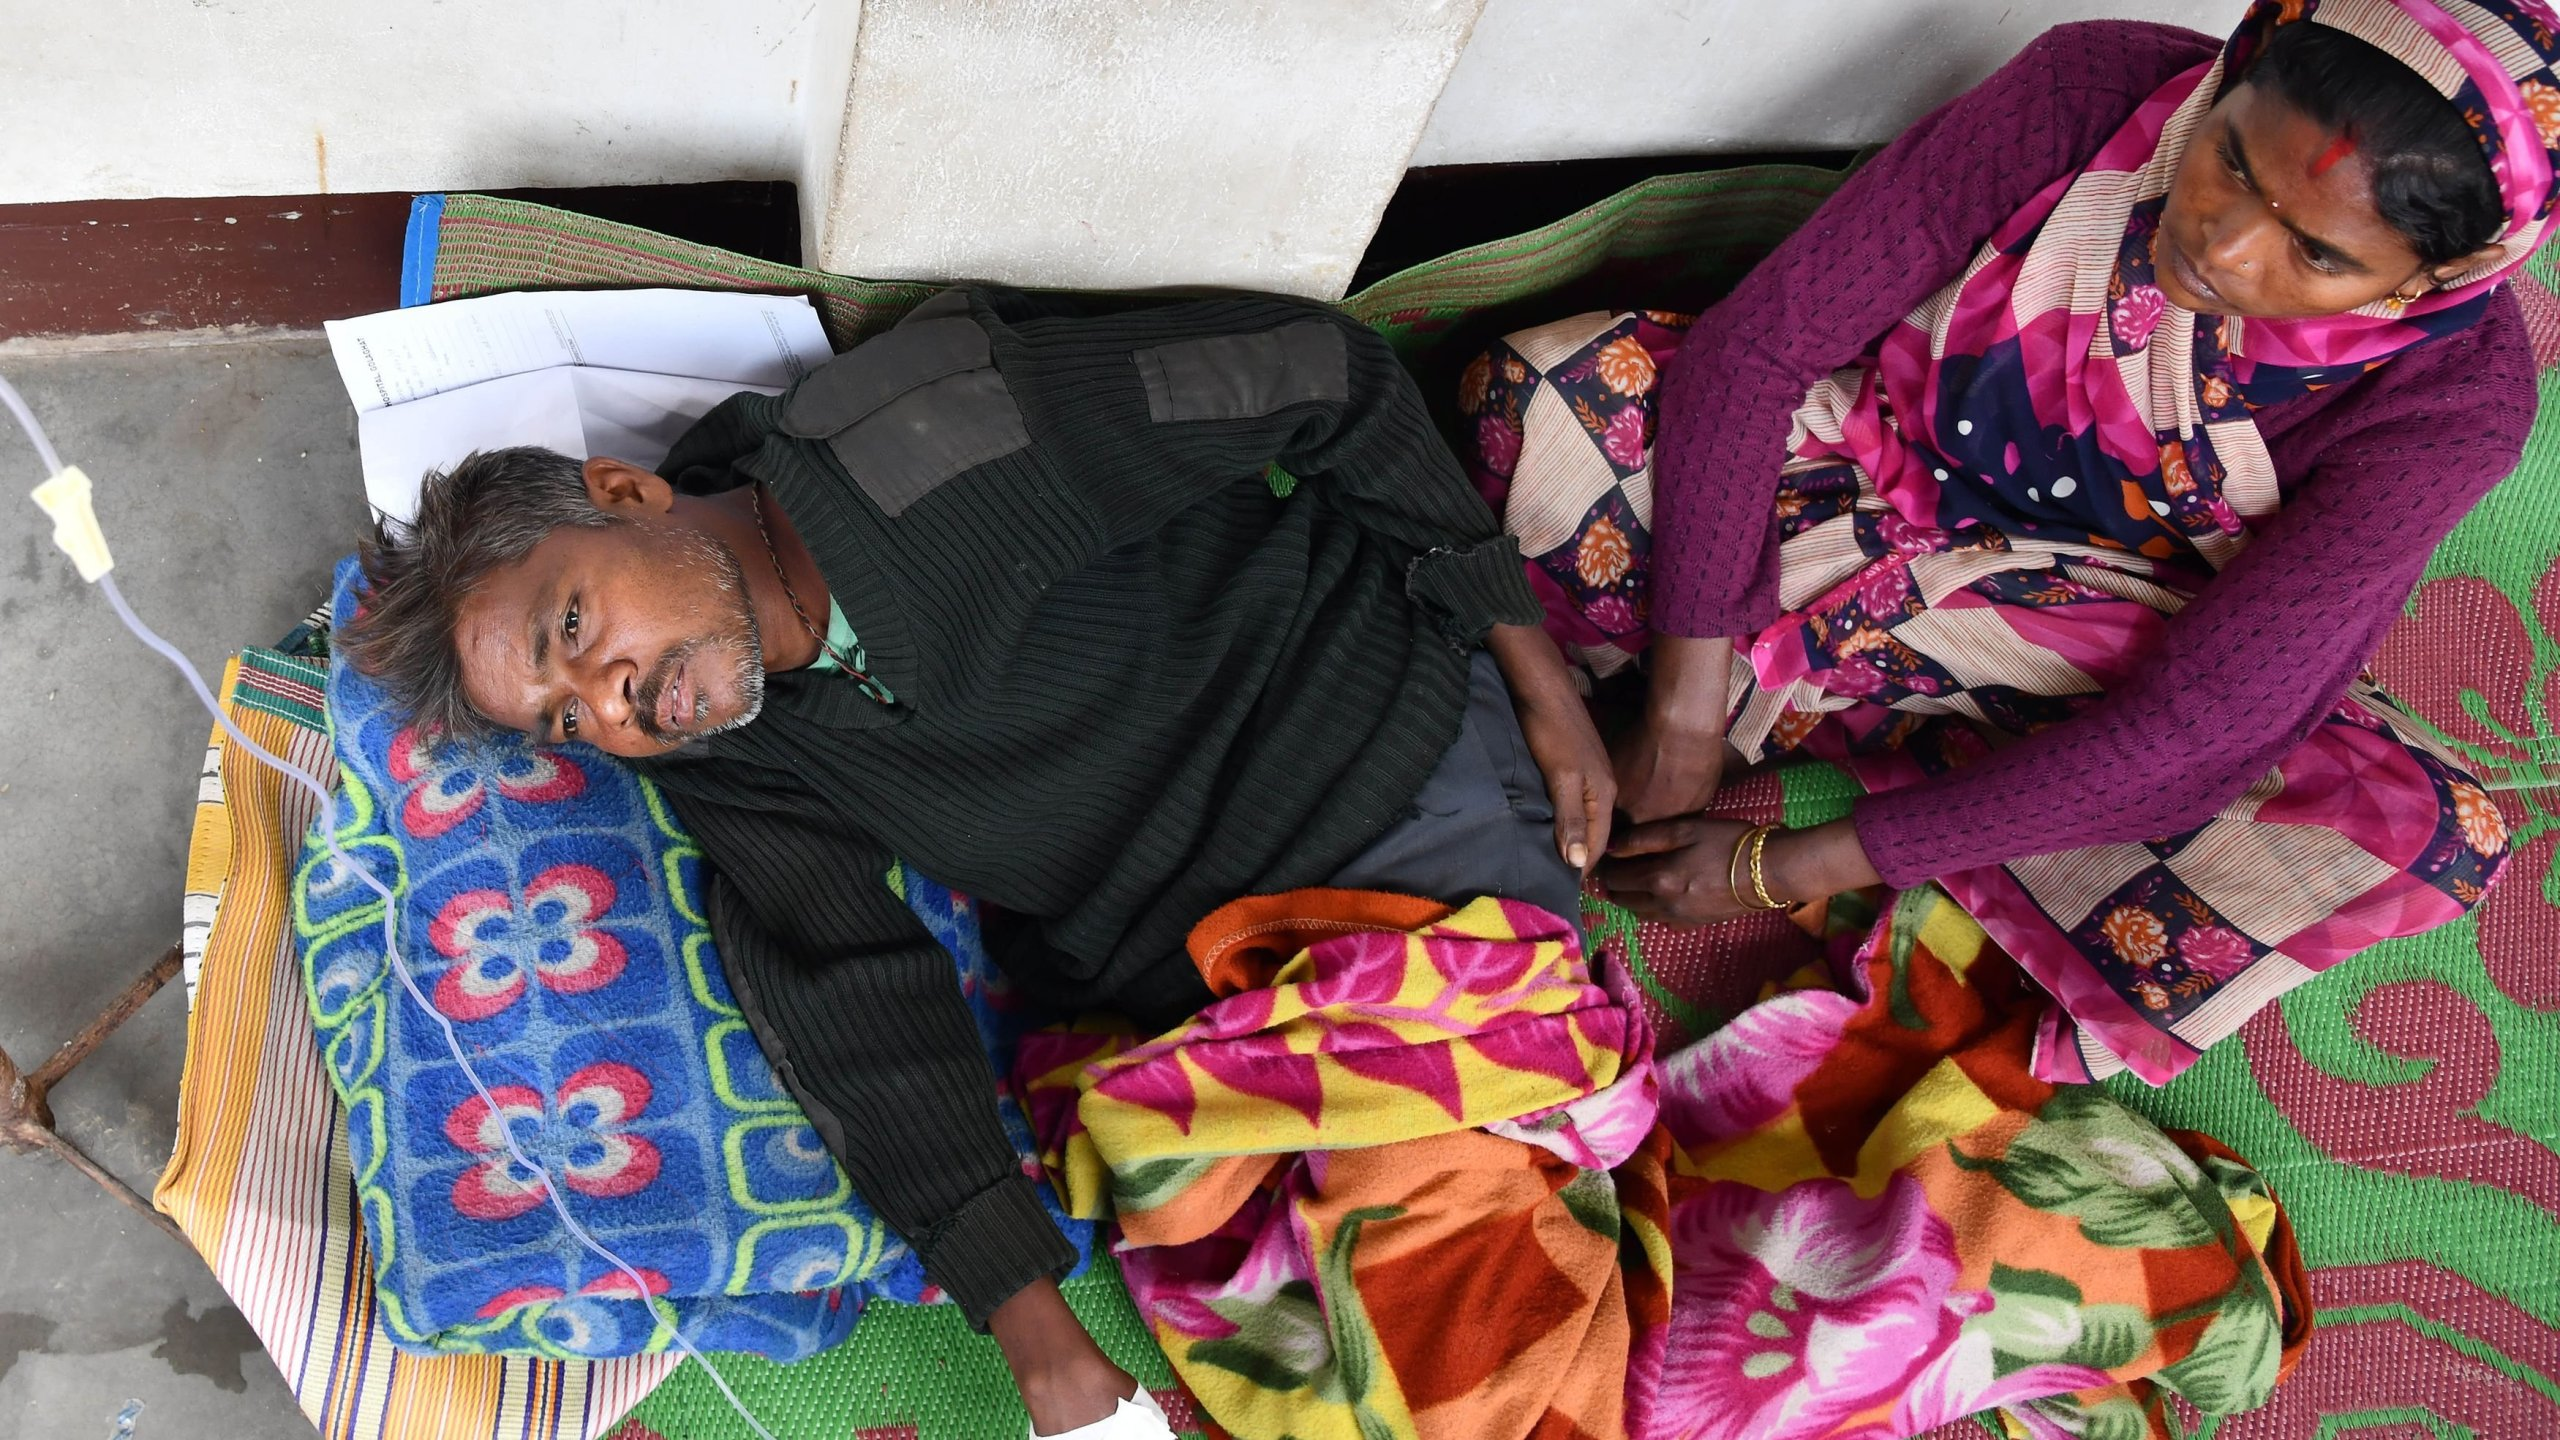 At least 133 people have died and more than 200 others have been hospitalized after consuming tainted alcohol in India, officials said. (Credit: CNN)